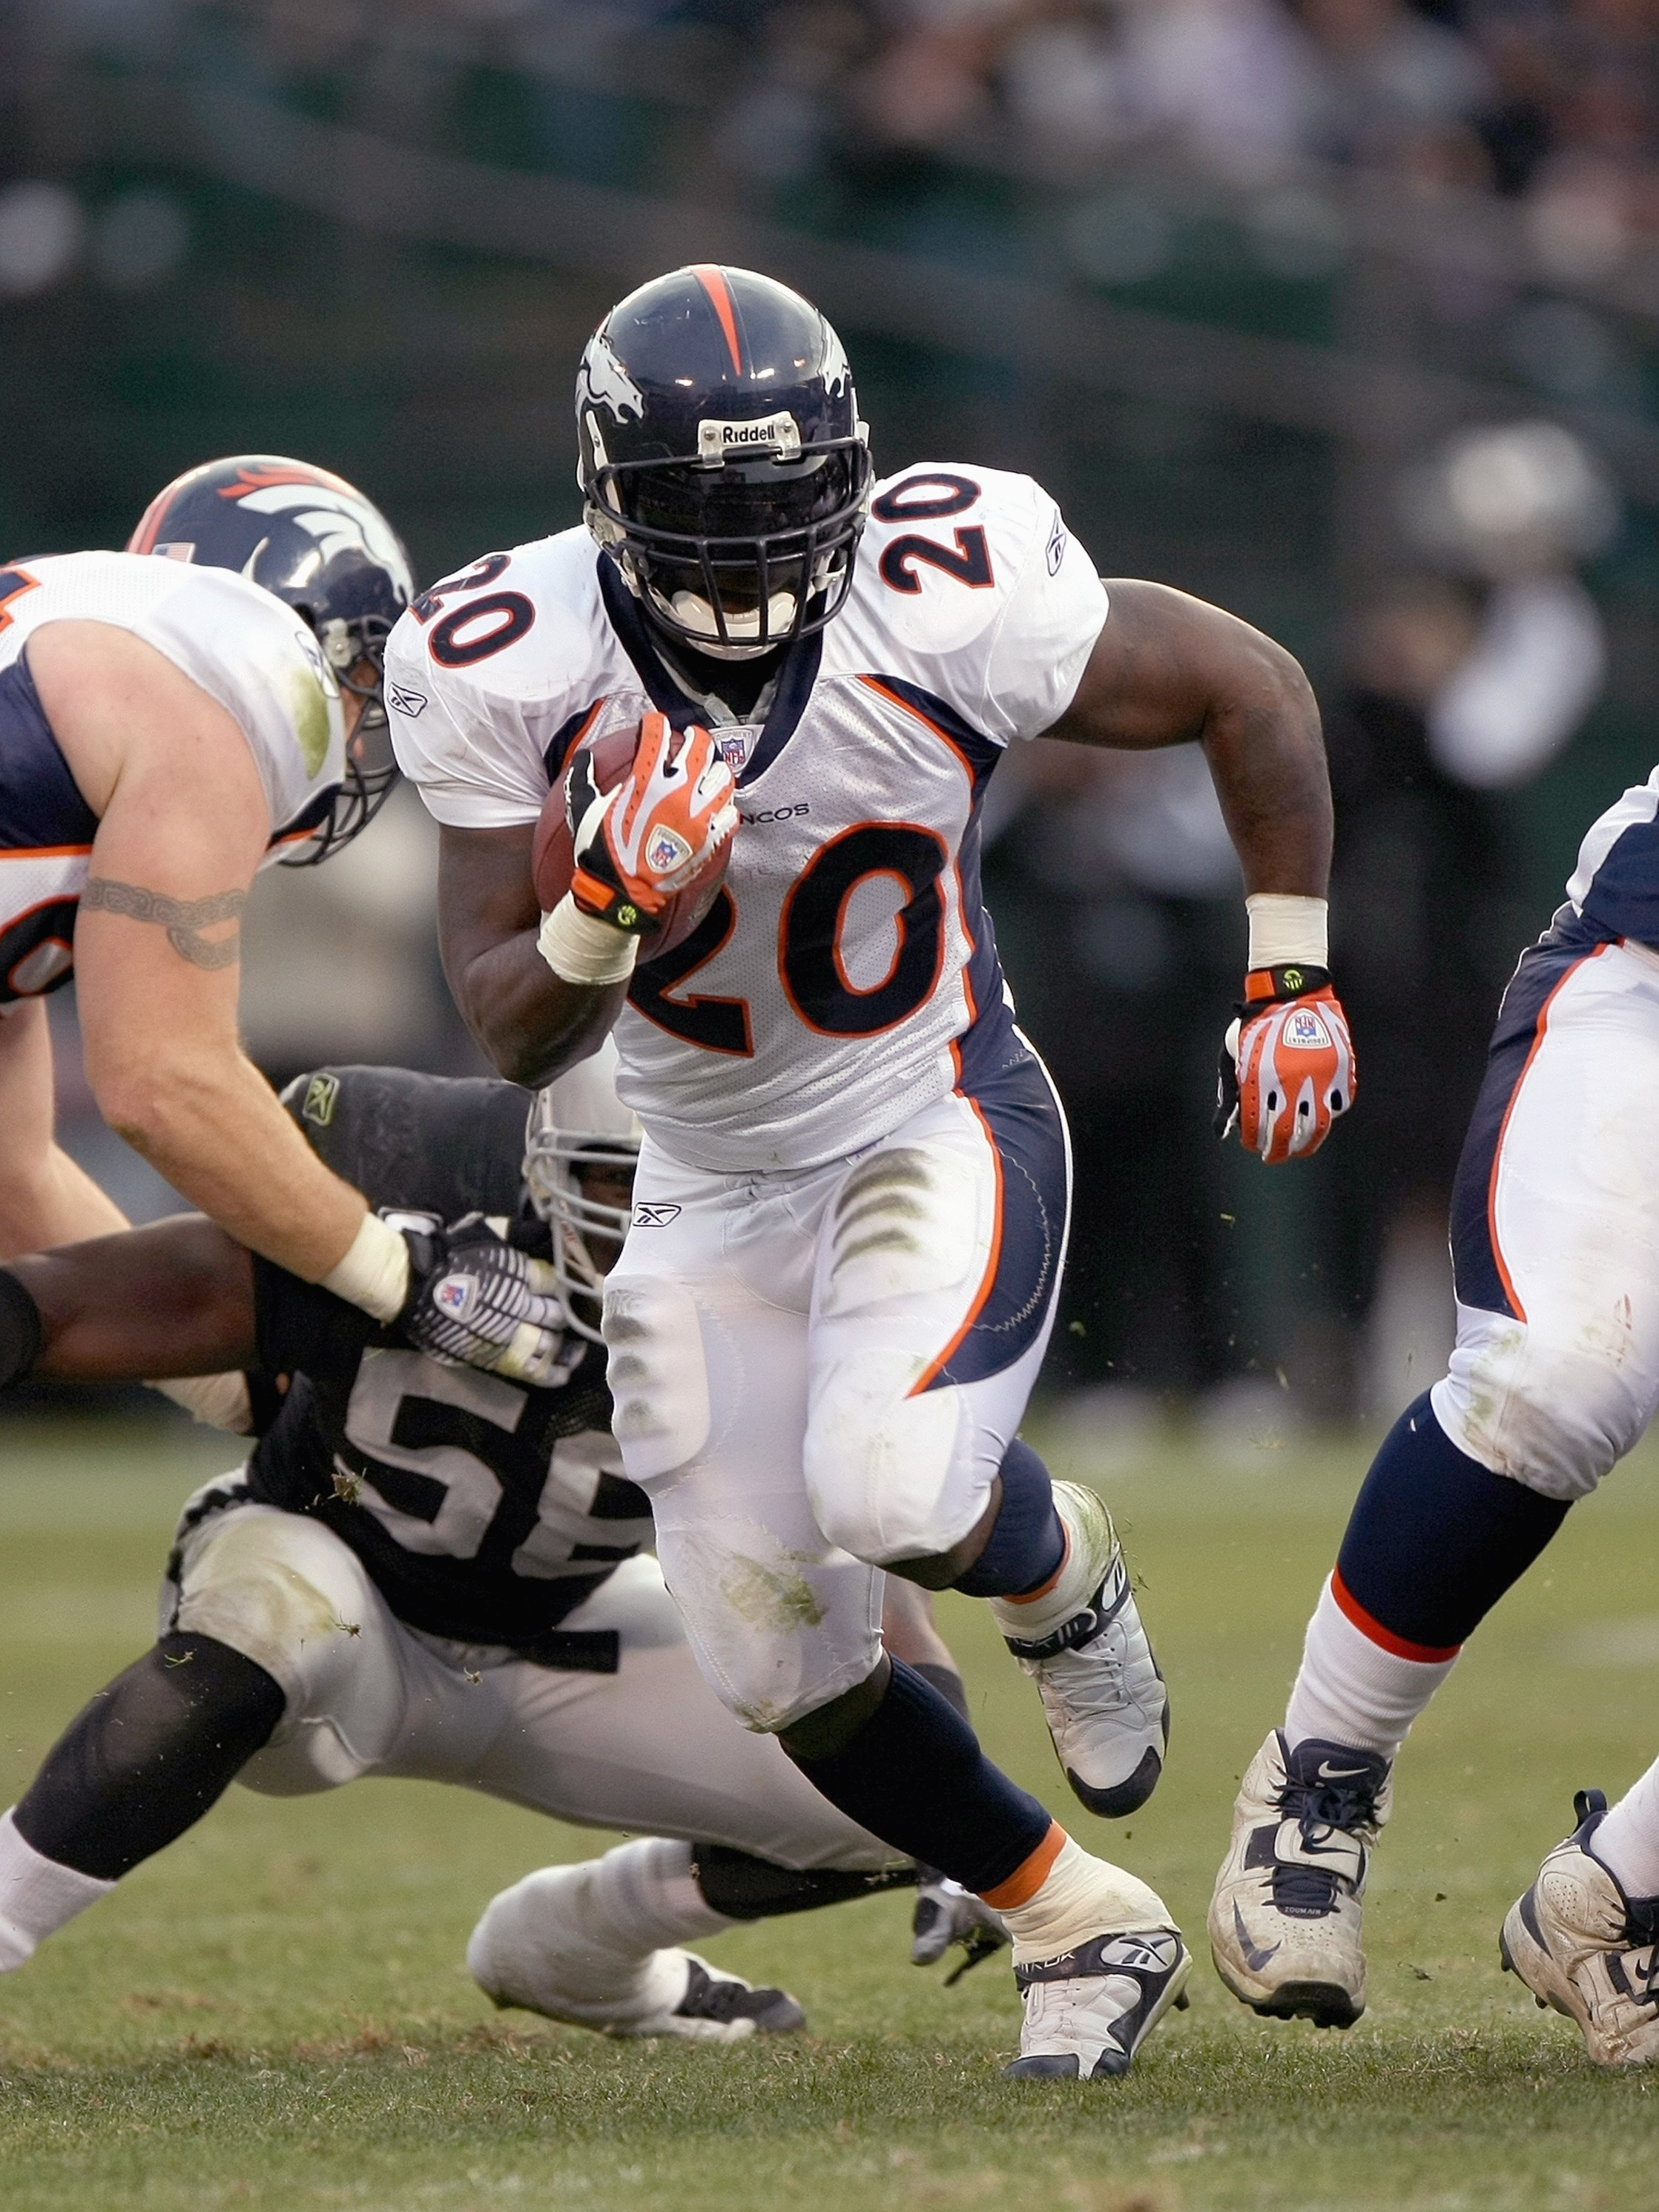 OAKLAND, CA - DECEMBER 2: Travis Henry #20 of the Denver Broncos carries the ball during the NFL game against the Oakland Raiders on December 2, 2007 at McAfee Coliseum in Oakland, California. (Photo by Jed Jacobsohn/Getty Images)